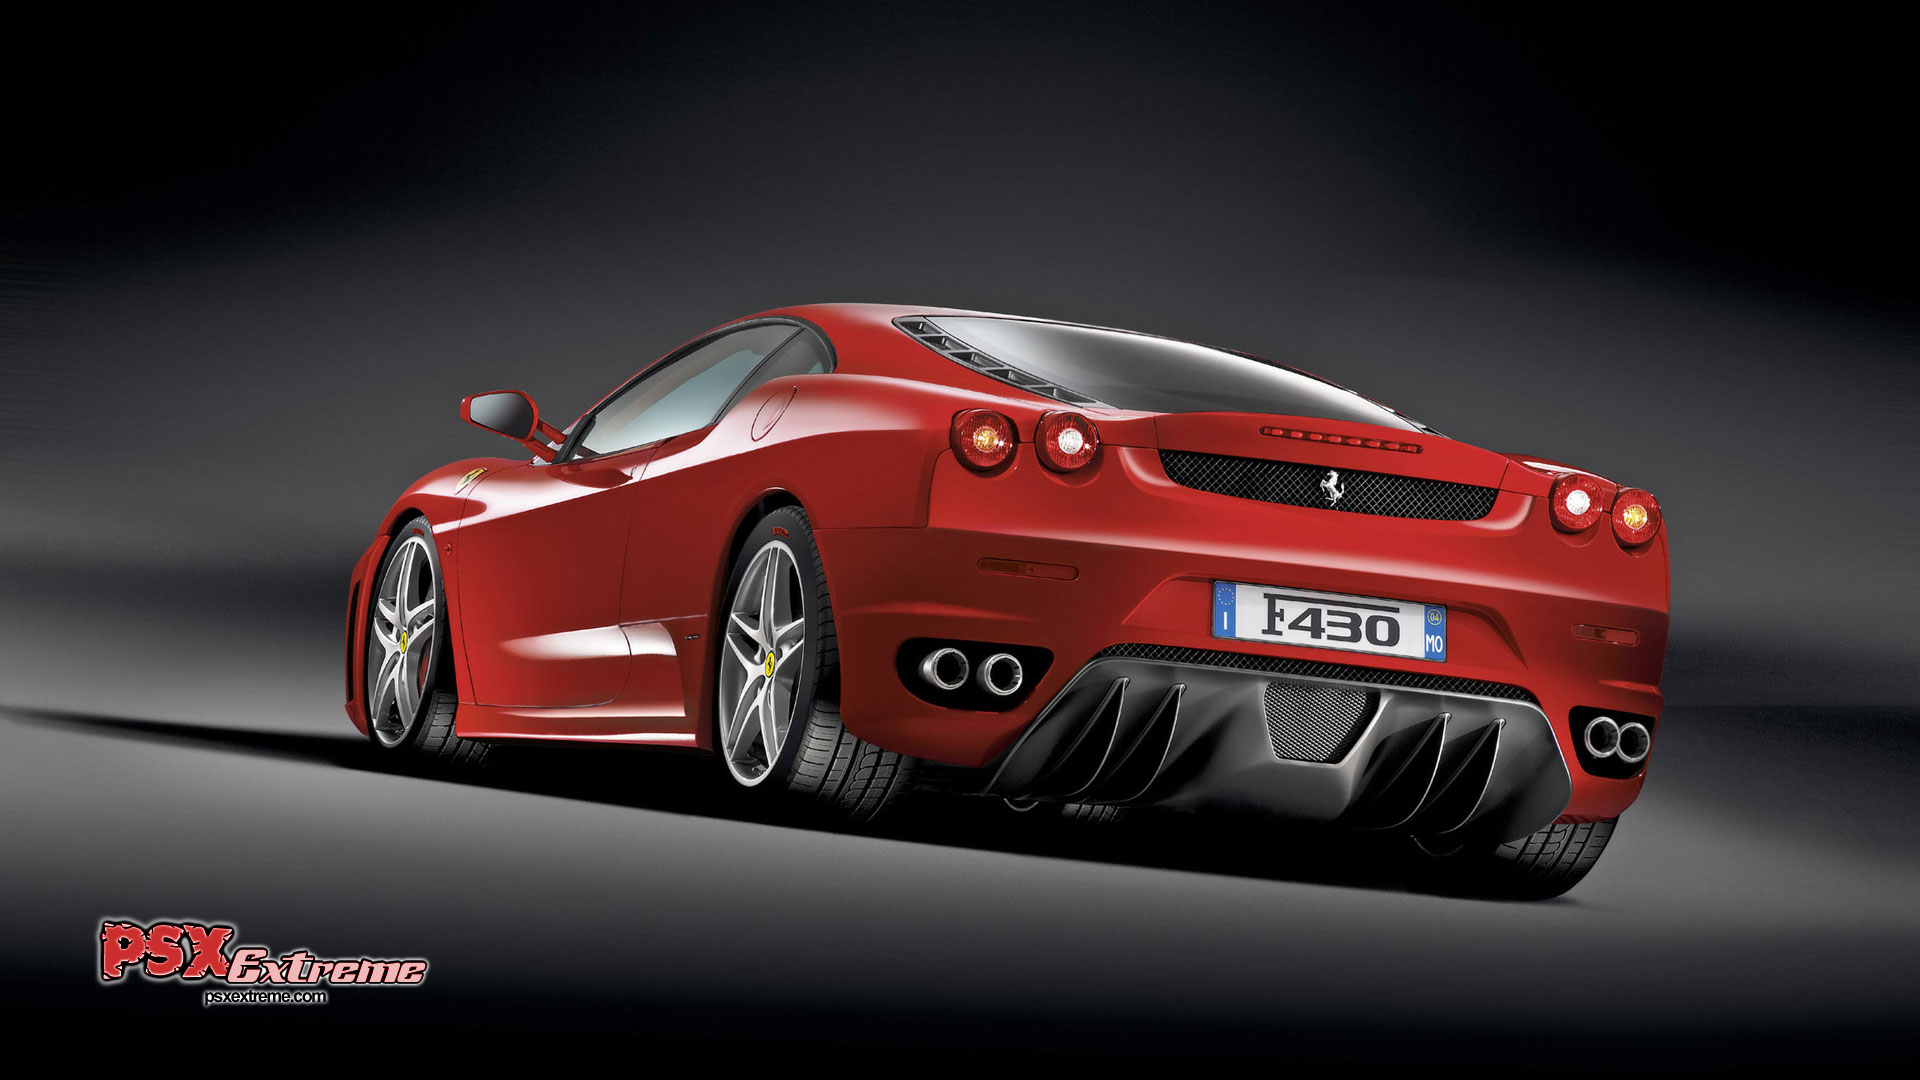 Ferrari F430 Wallpapers